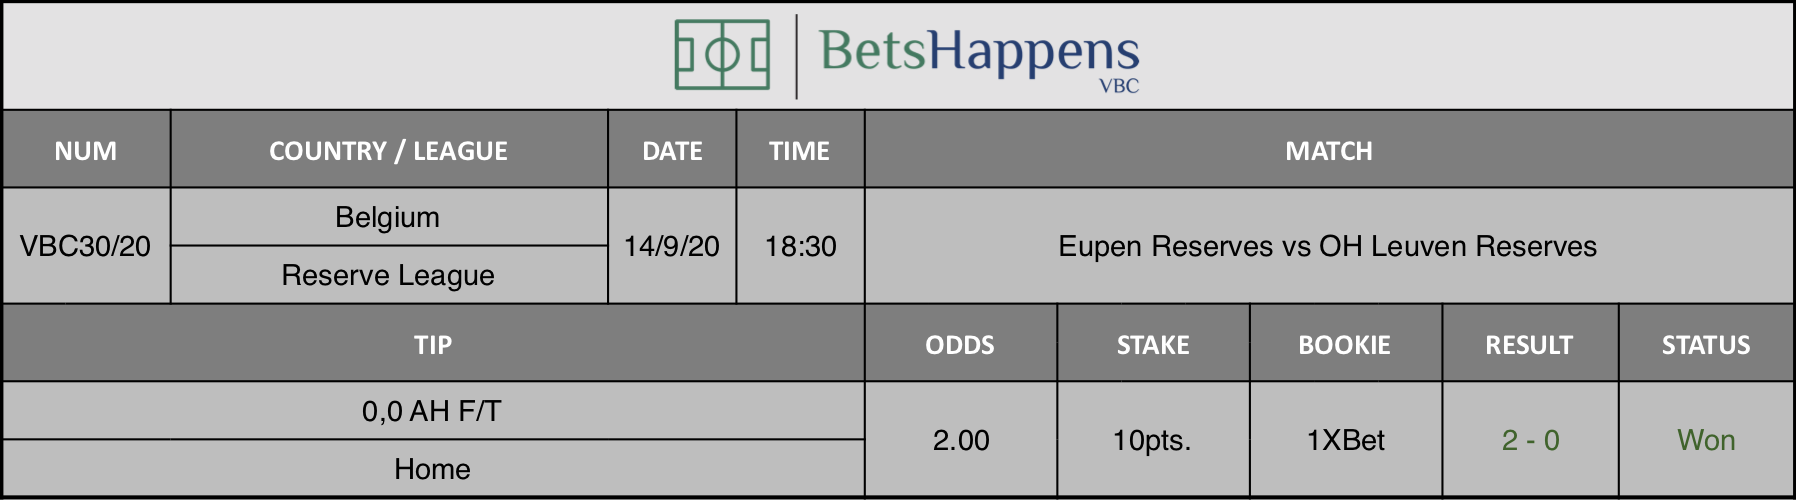 Results of our tip for the match Eupen Reserves vs OH Leuven Reserves where 0.0 AH F / T Home is recommended.